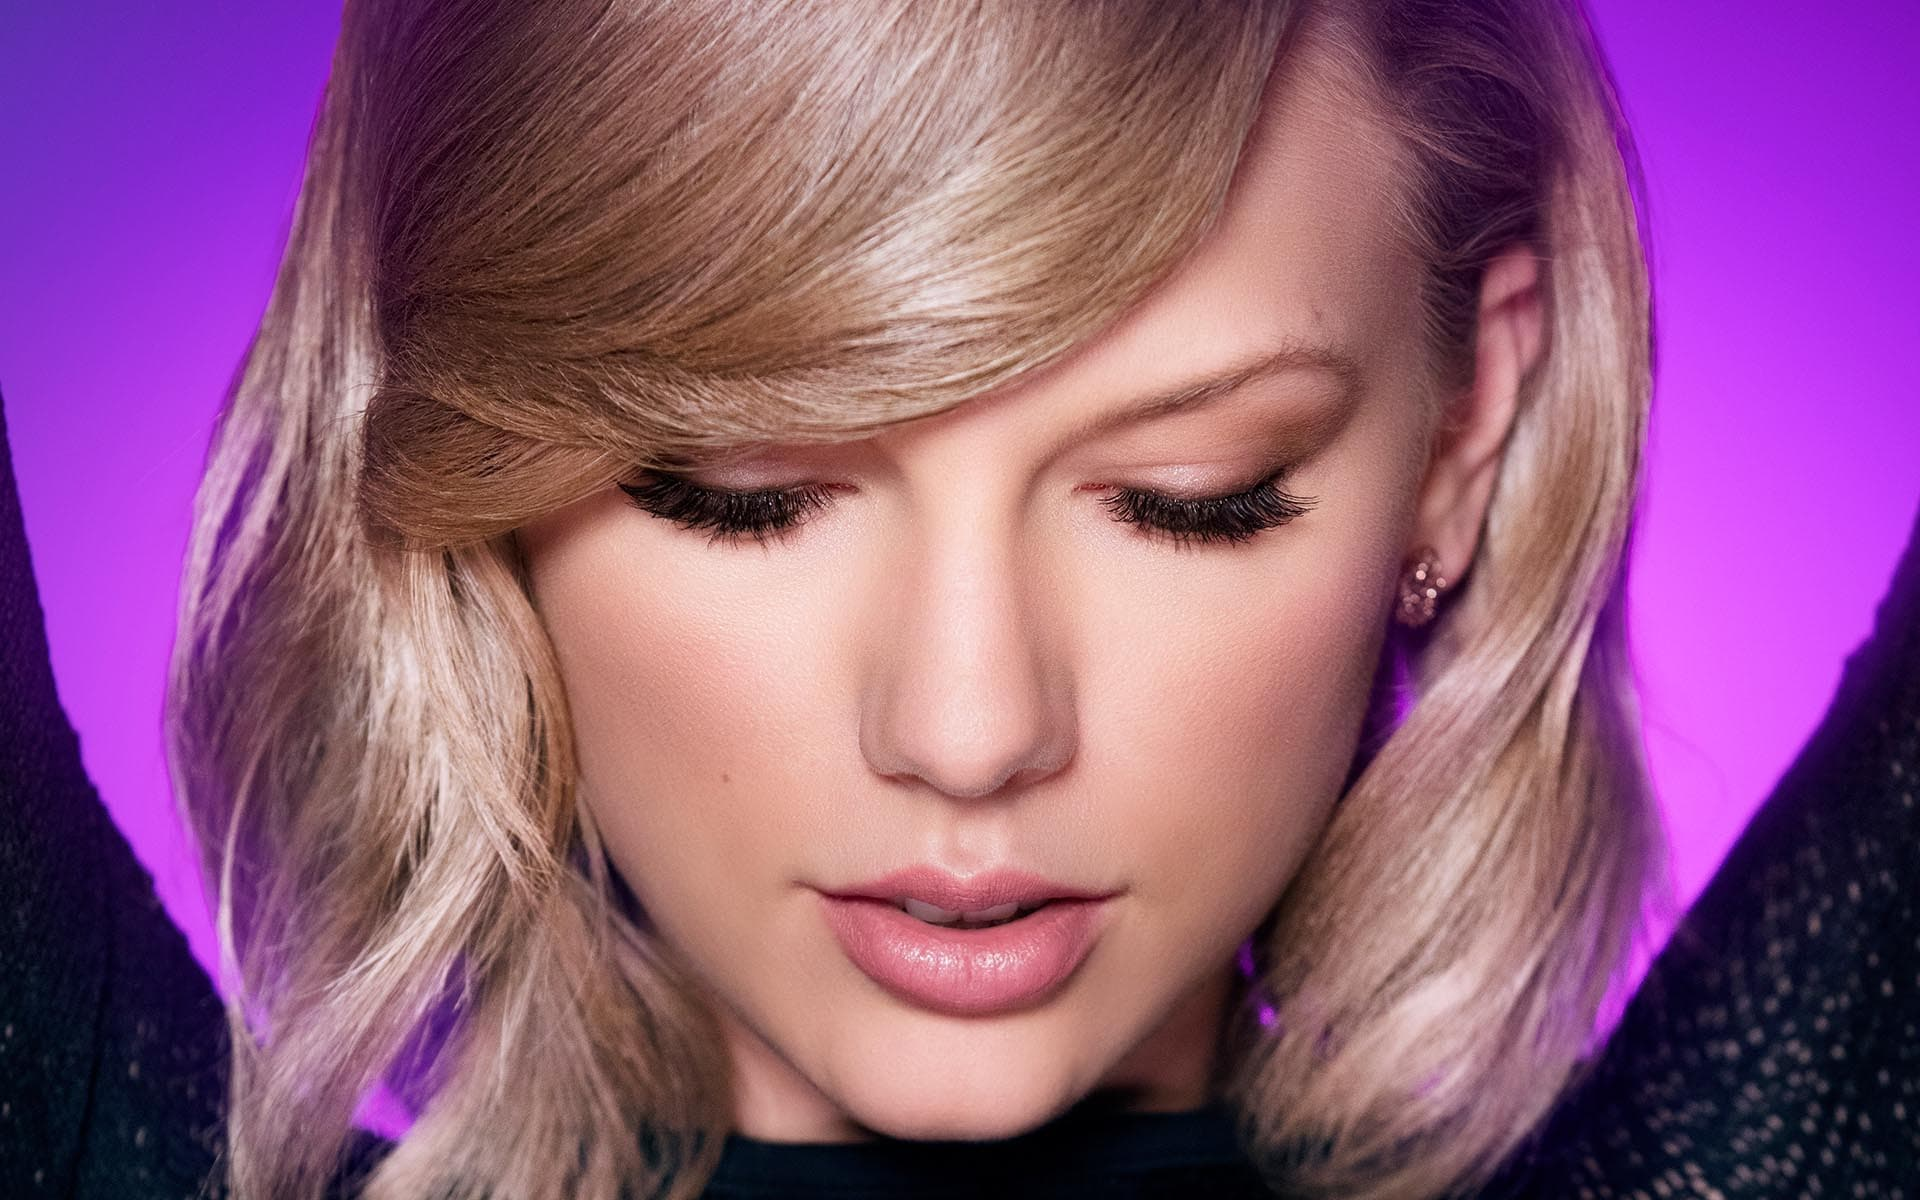 How to Look Like Taylor Swift Makeup